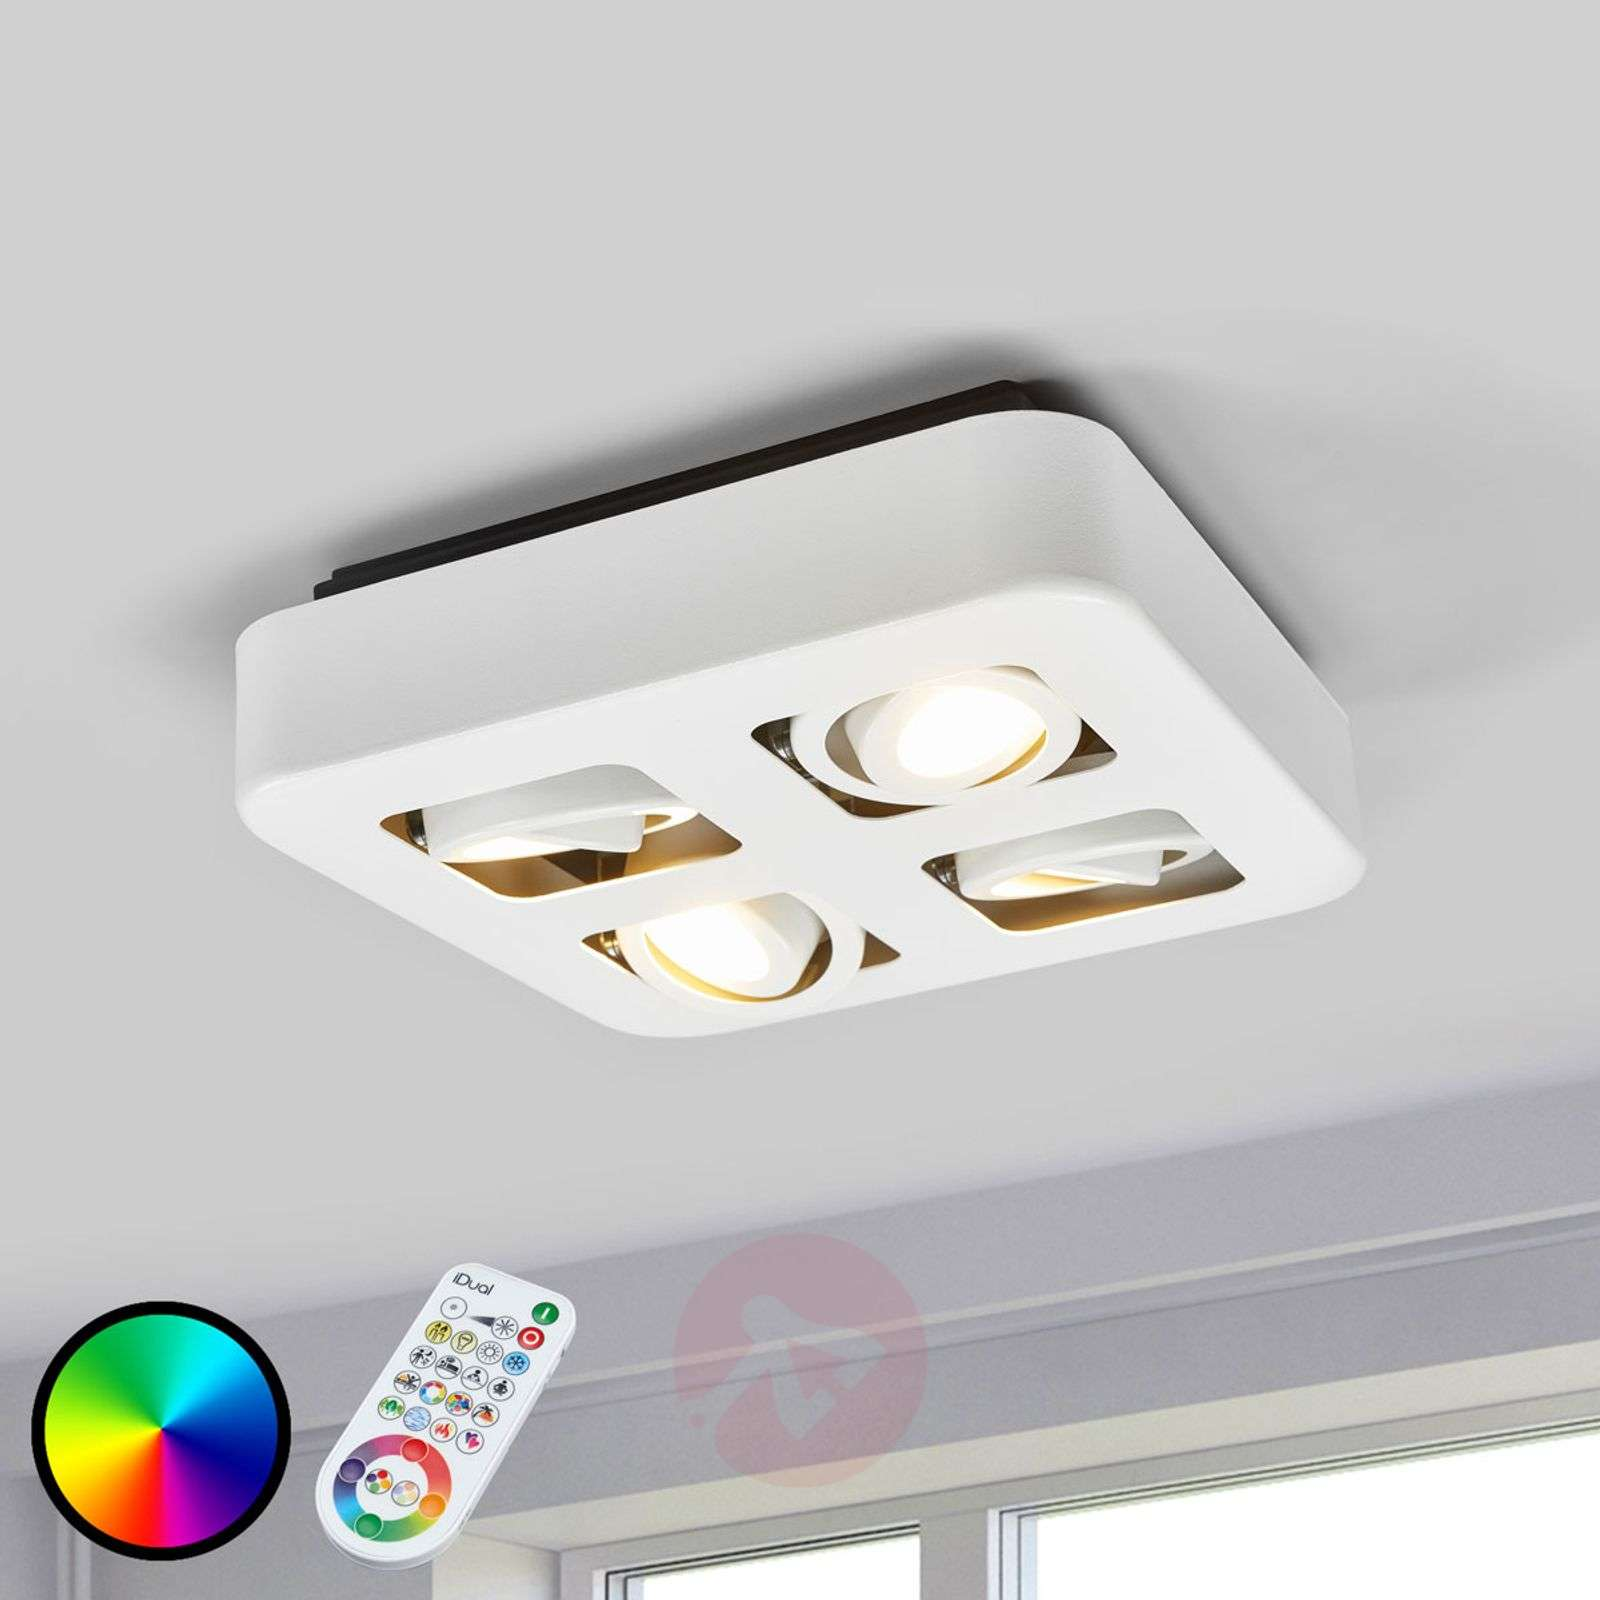 Control de luces iDual LED | lampara.es